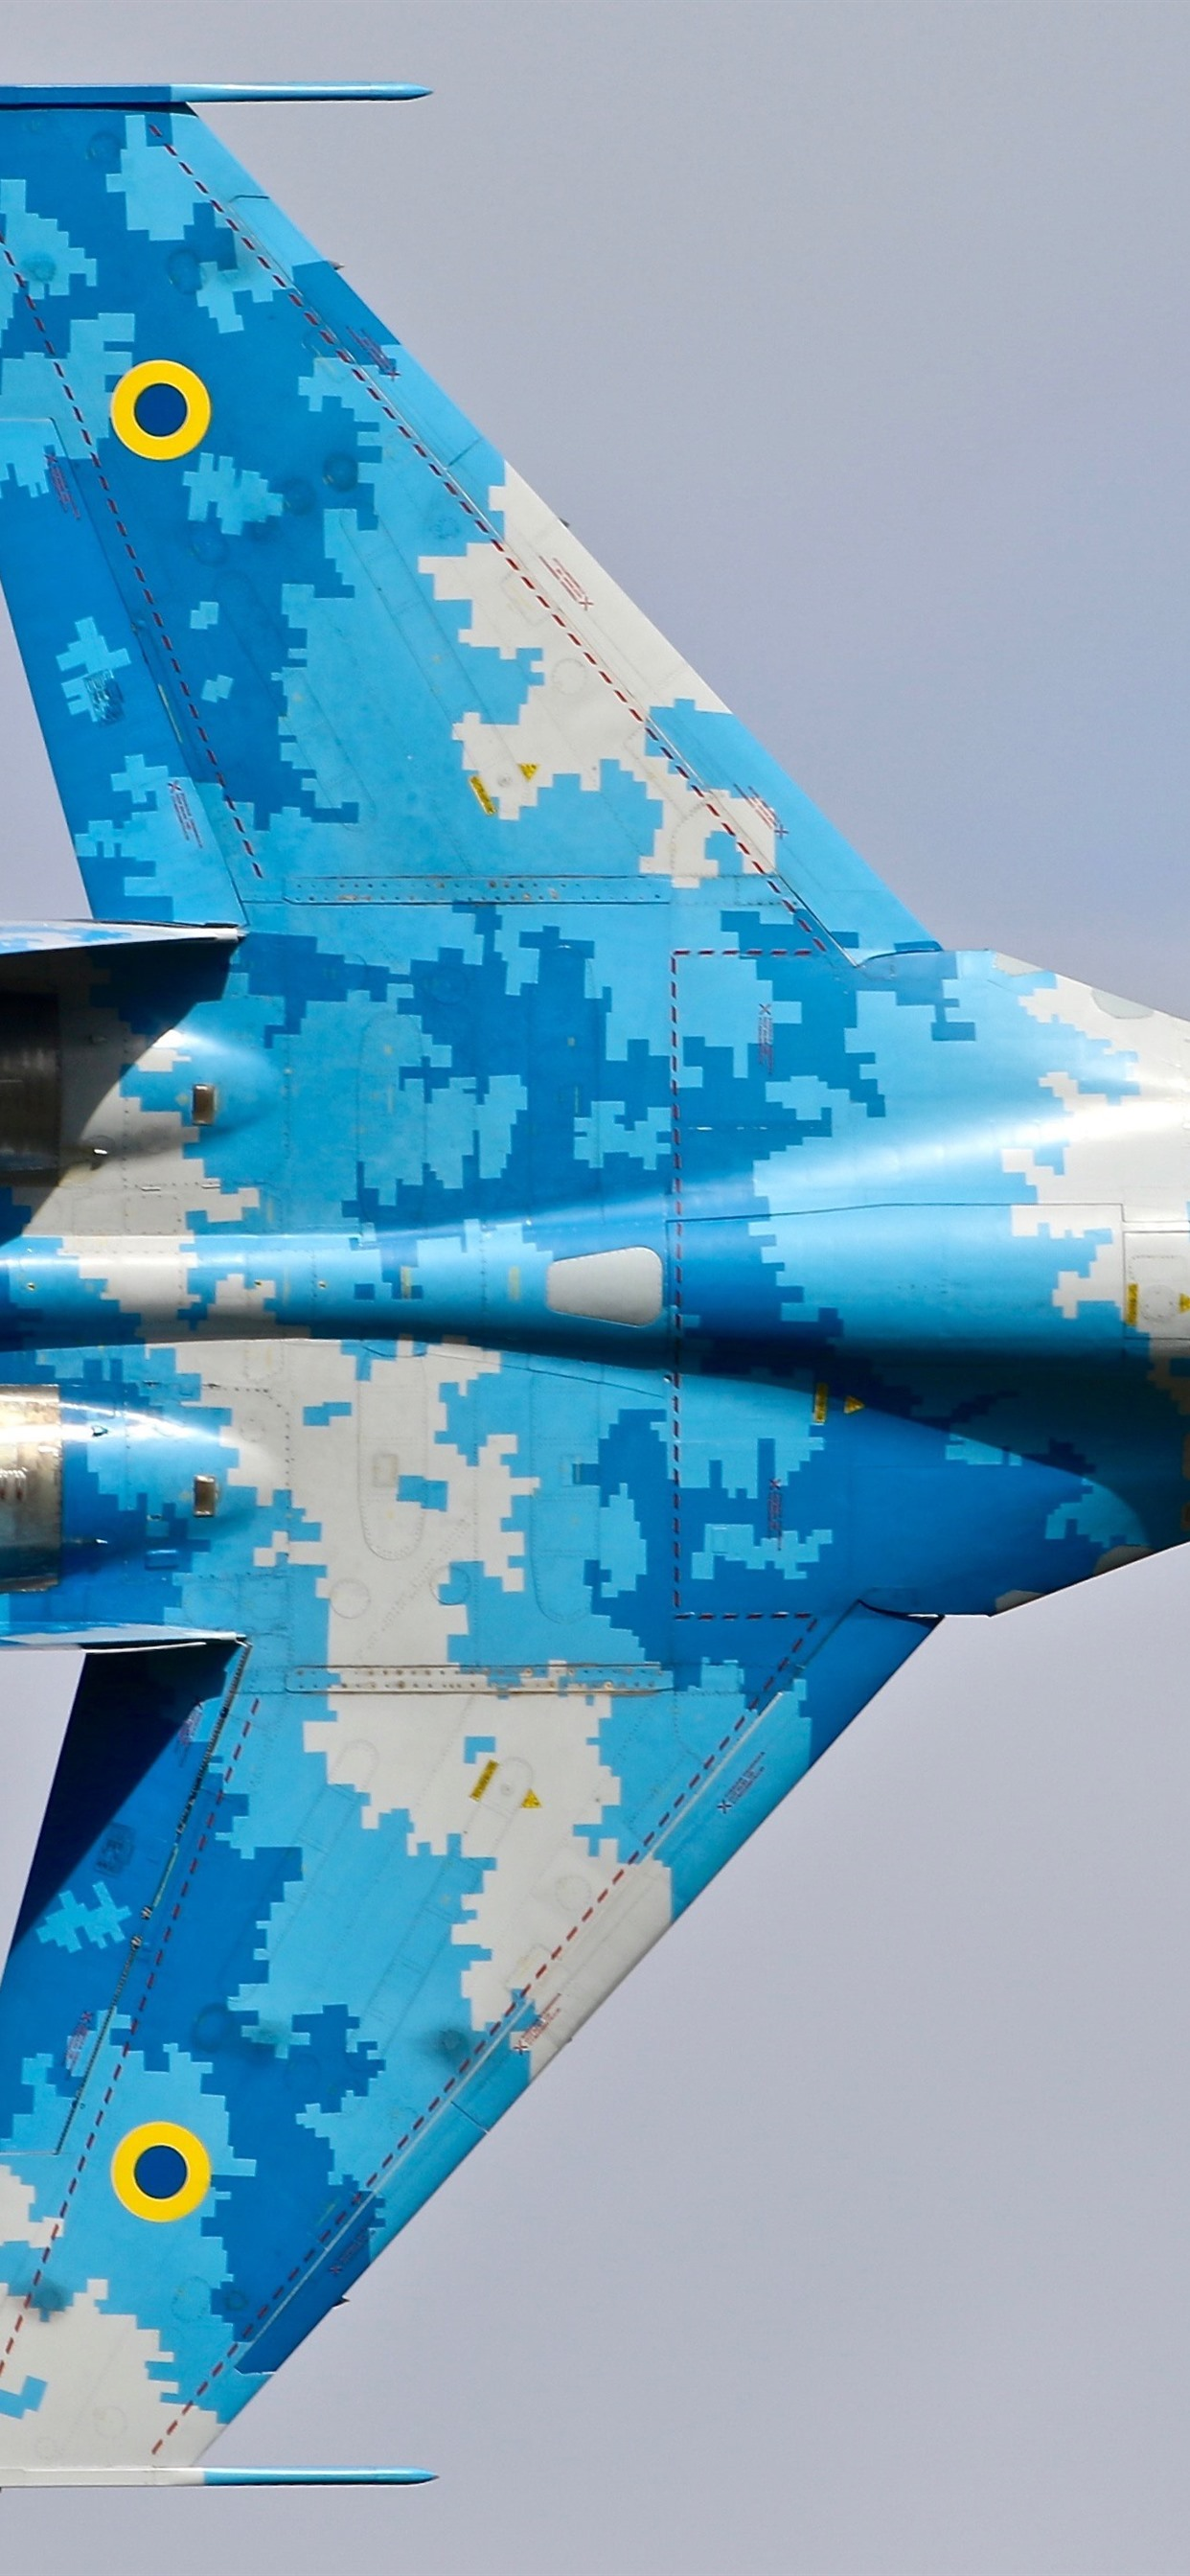 Su 27 fighter blue wings top view 1242x2688 iPhone 11 ProXS 1242x2688